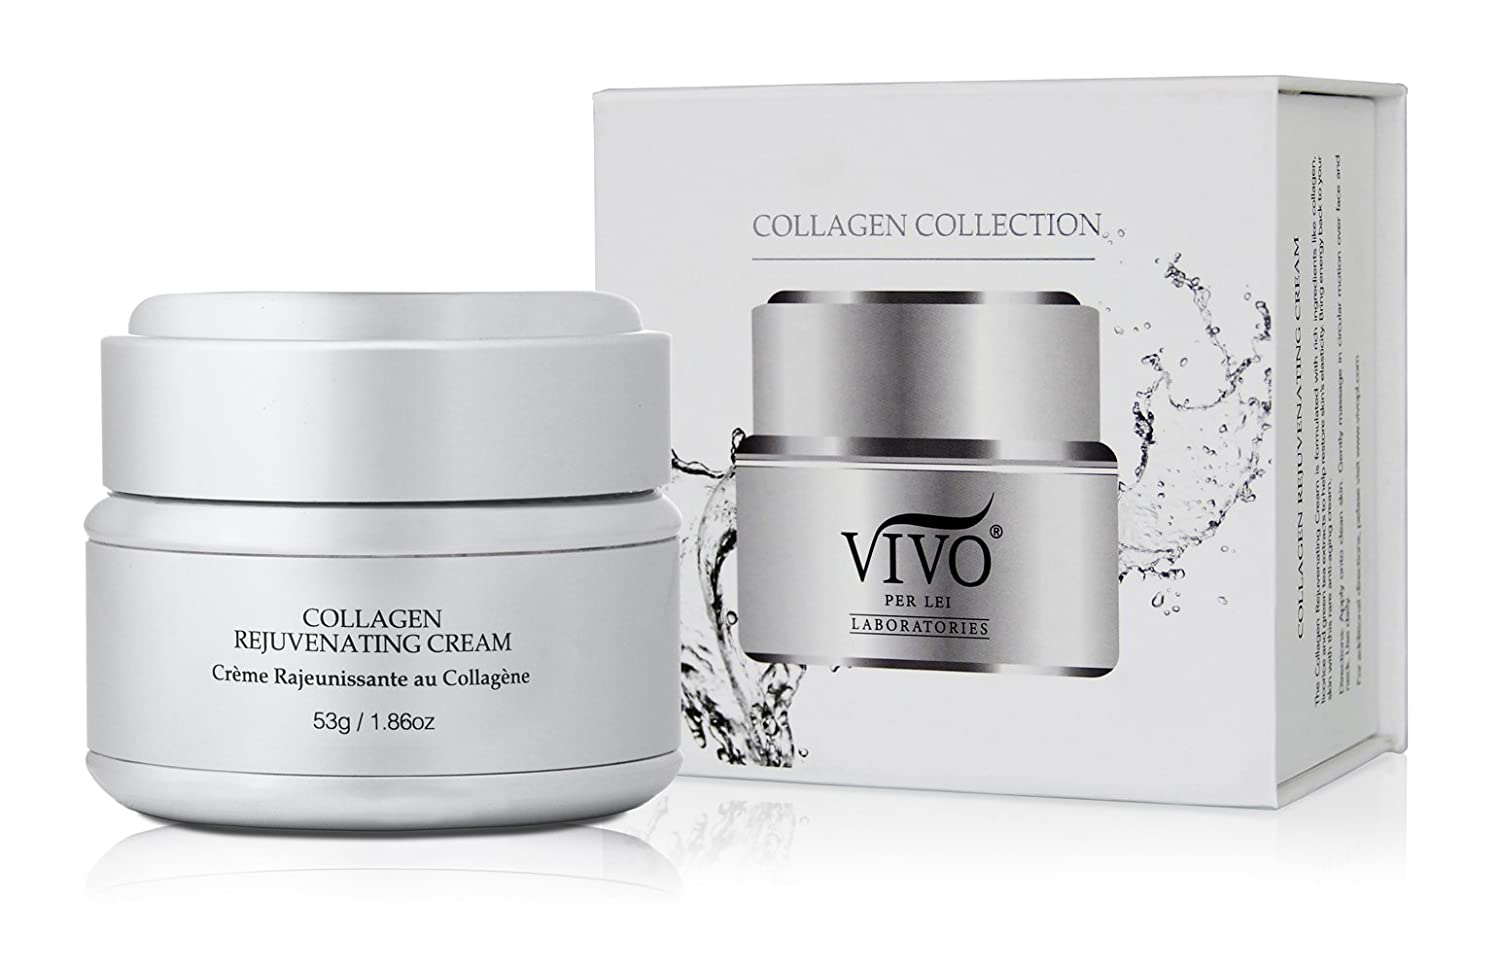 Vivo Per Lei Collagen Face Cream - Anti-Aging Vitamin Face Cream With Green Tea - Collagen Day Cream With Vitamins And Palm Oil - Deep Moisturizing Day cream For A Ravishing Skin Texture